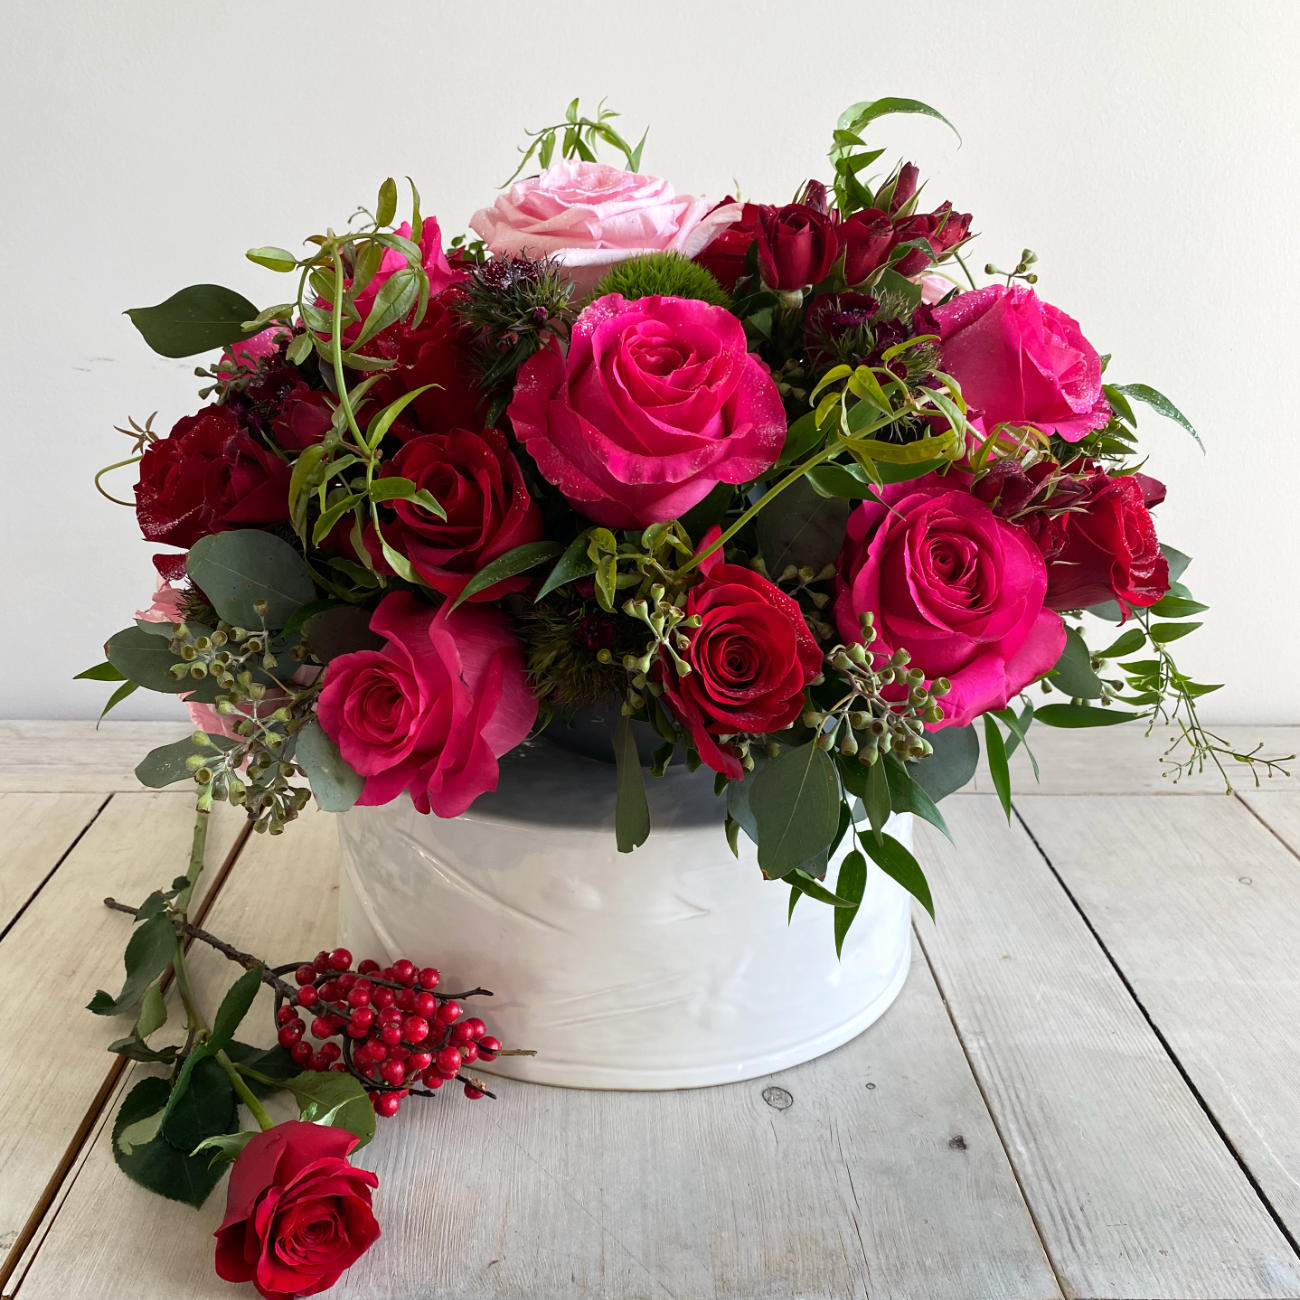 A Jaw-dropping floral design that showcases the pure beauty of a rose. A stunning arrangement of paved mixed roses and greens. Featuring red hearts roses. Pink Floyd Roses and romantic O'Hara garden roses. Topped with a touch of glitter.